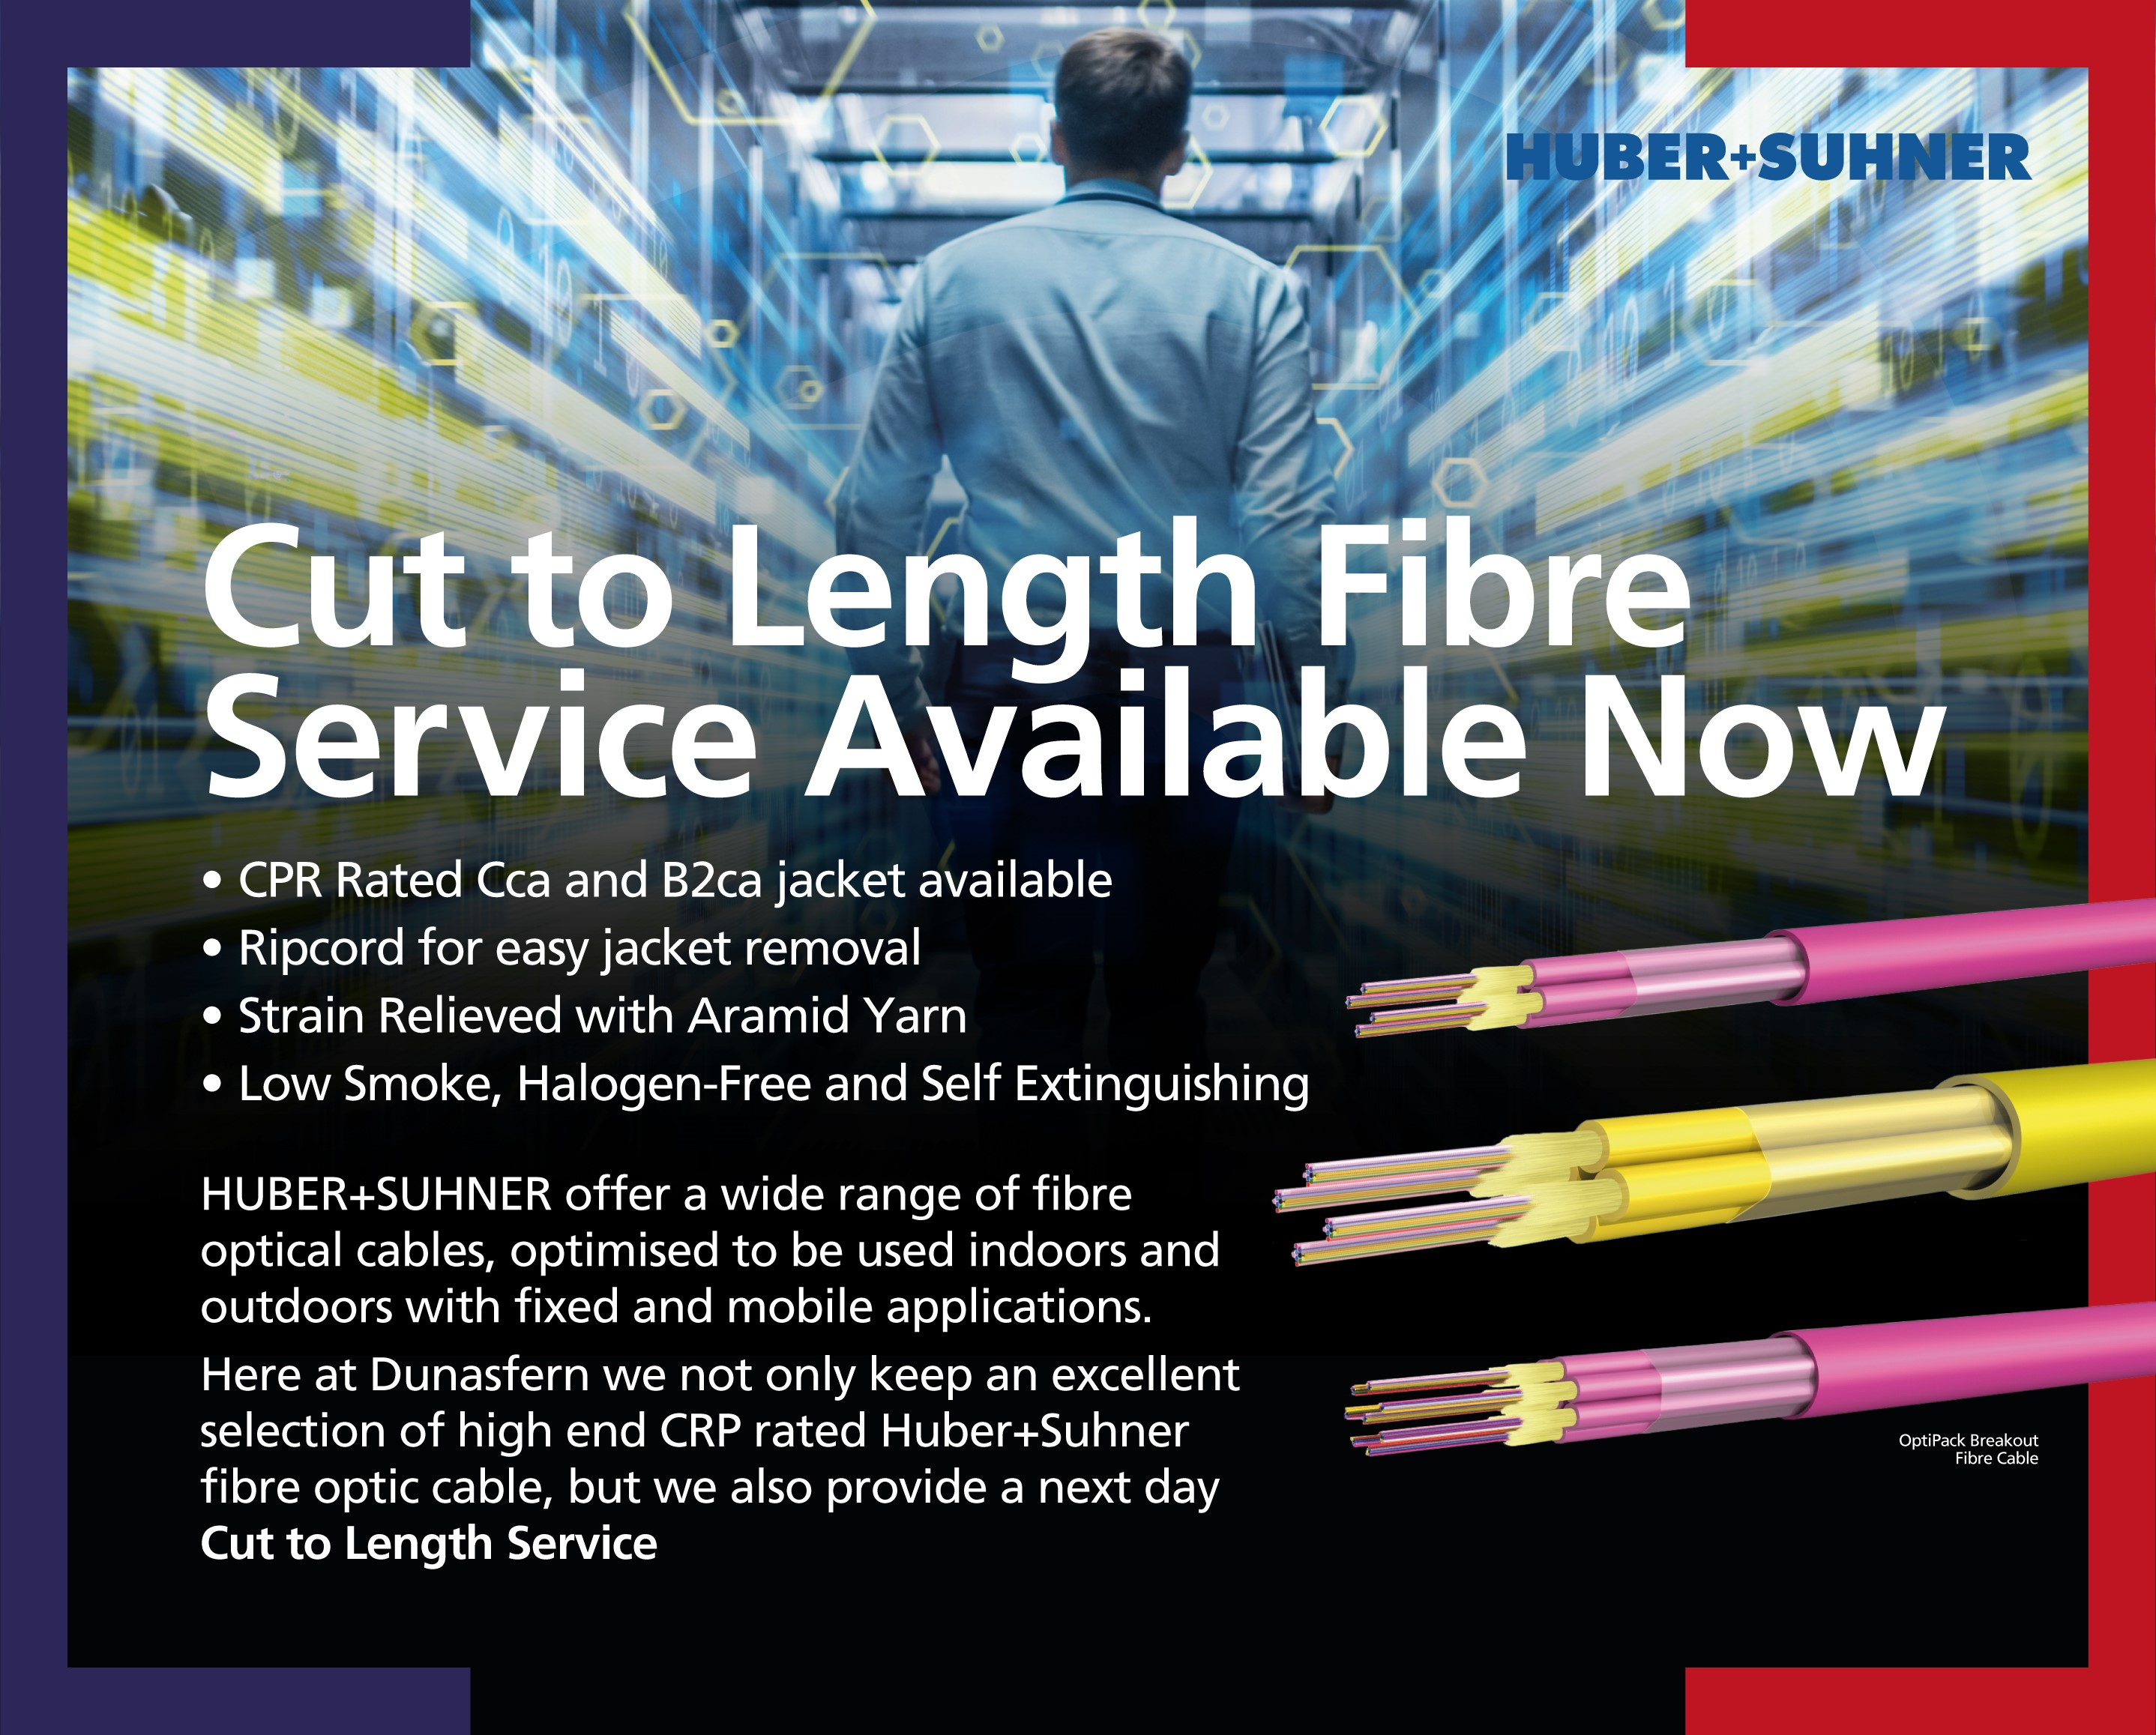 Huber + Suhner Cut to Length Fibre Service available now